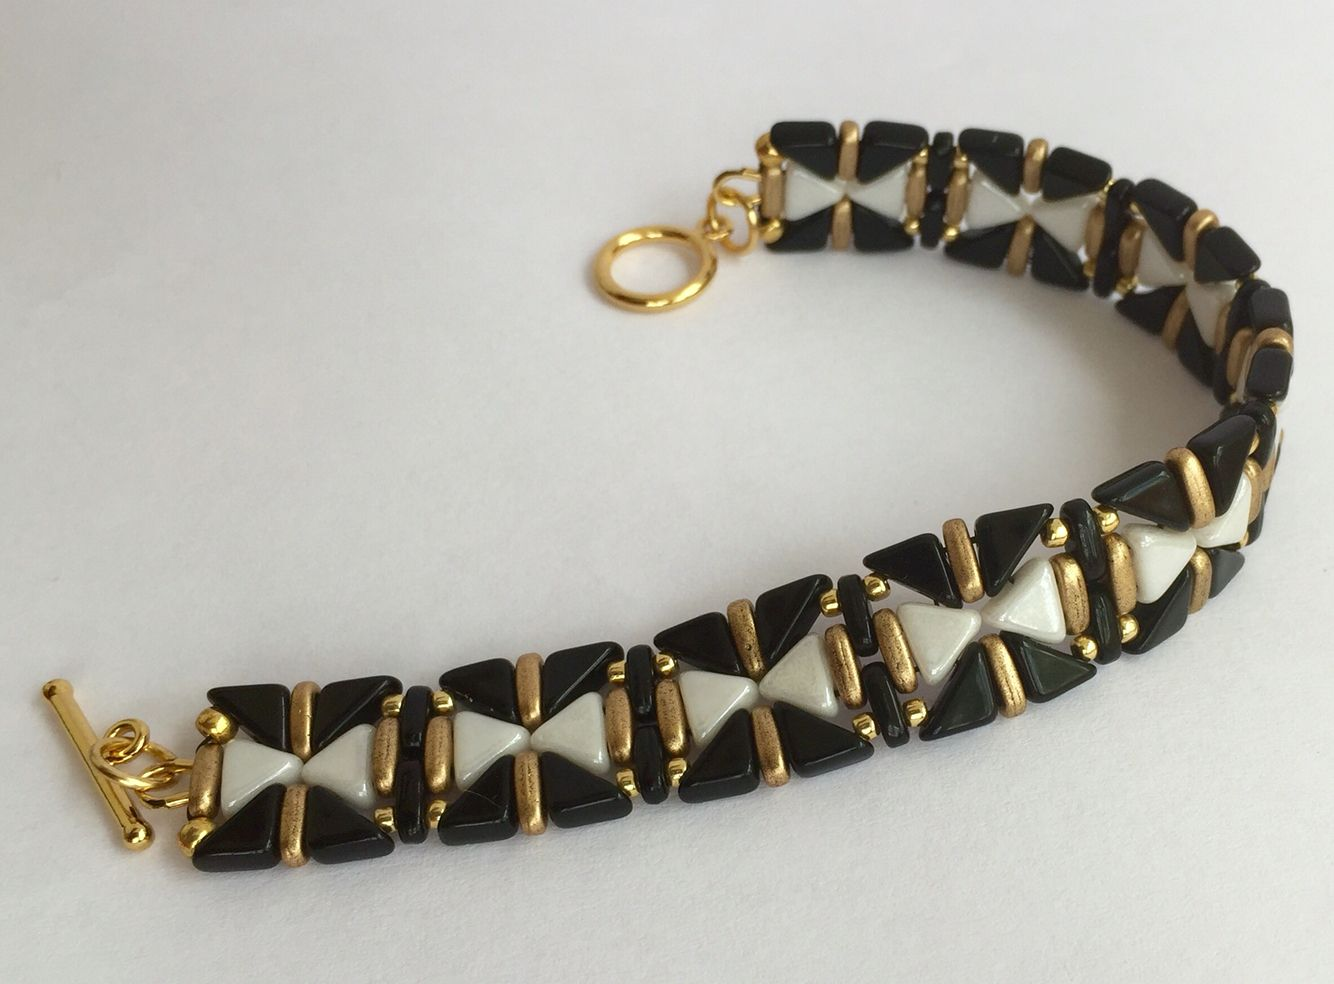 Bracelet made with Kheops and Tangos. Beautiful Rain Jewelry